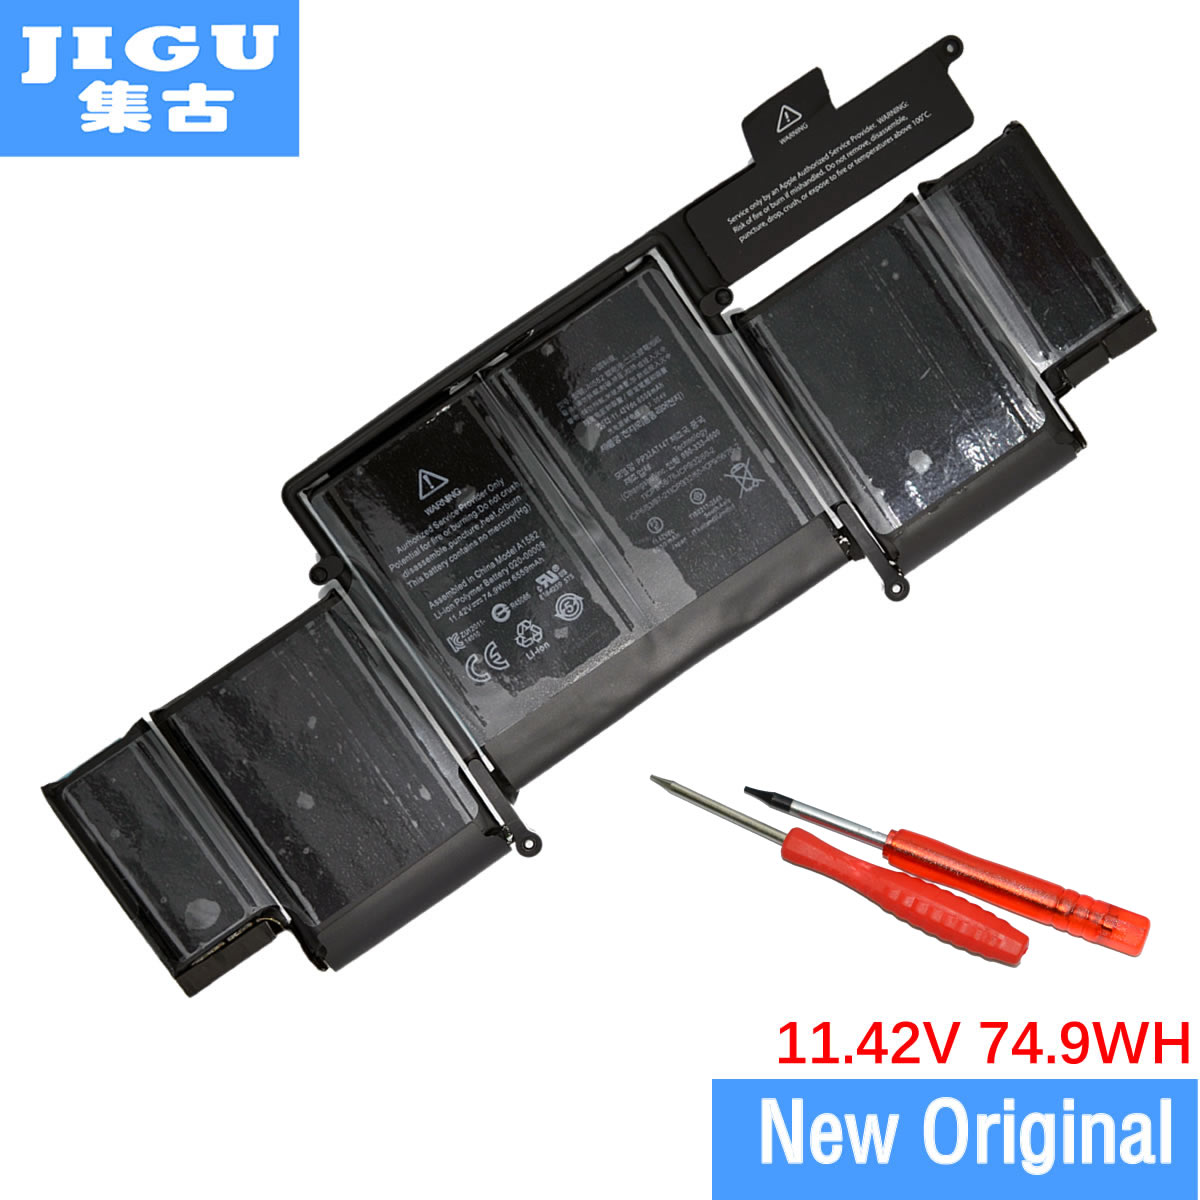 JIGU Free shipping Brand New Original Battery A1582 For Apple for Macbook PRO Retina 13inch A1502 2015 Year original new for nihon kohden pvm 2700 pvm 2703 pvm 2701 sb 201p x076 monitor rechargeable battery 12v 3700mah free shipping